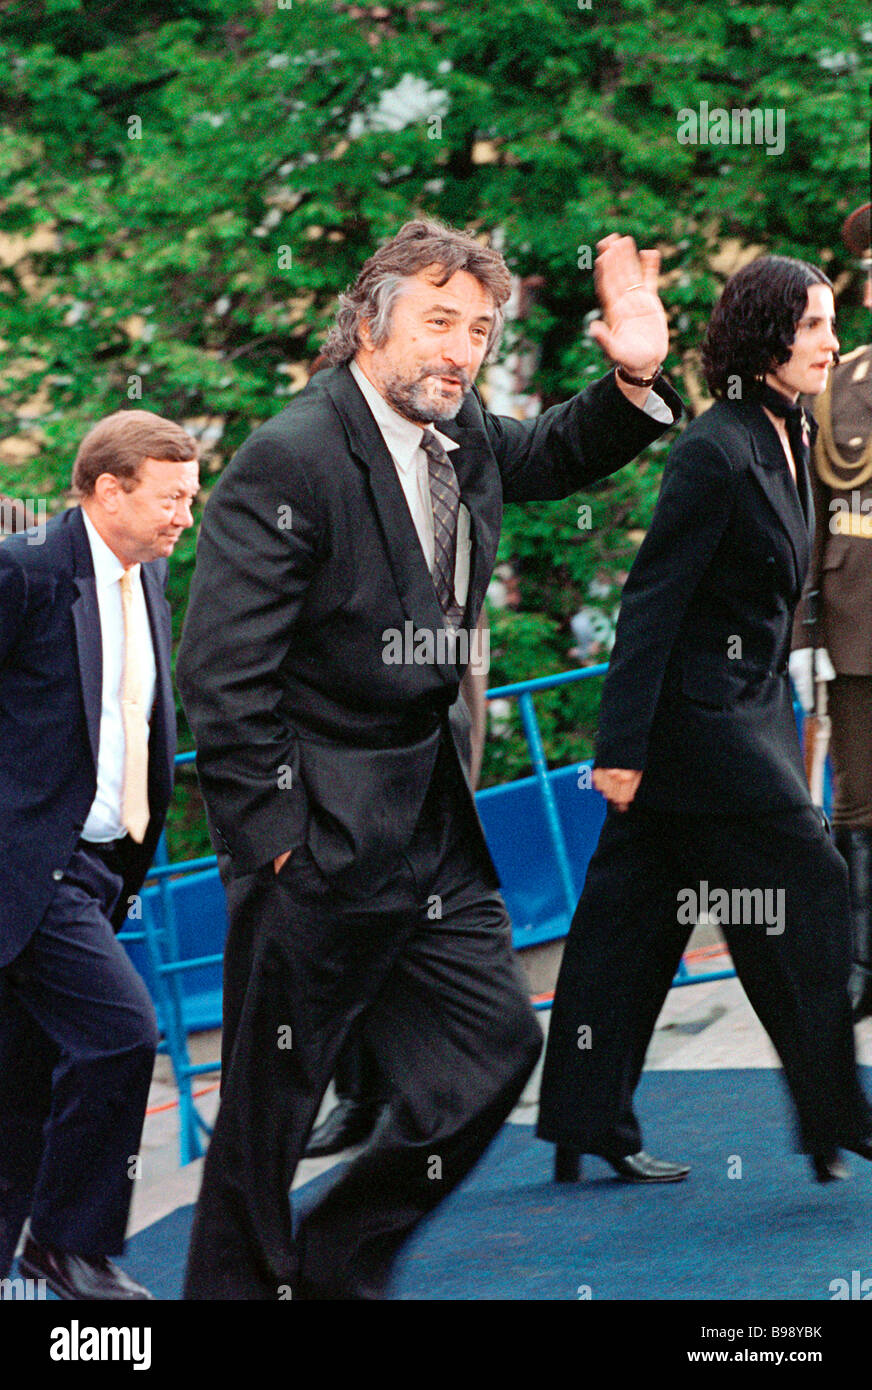 Famous American actor Robert De Niro guest of the 20th Moscow International Film Festival - Stock Image